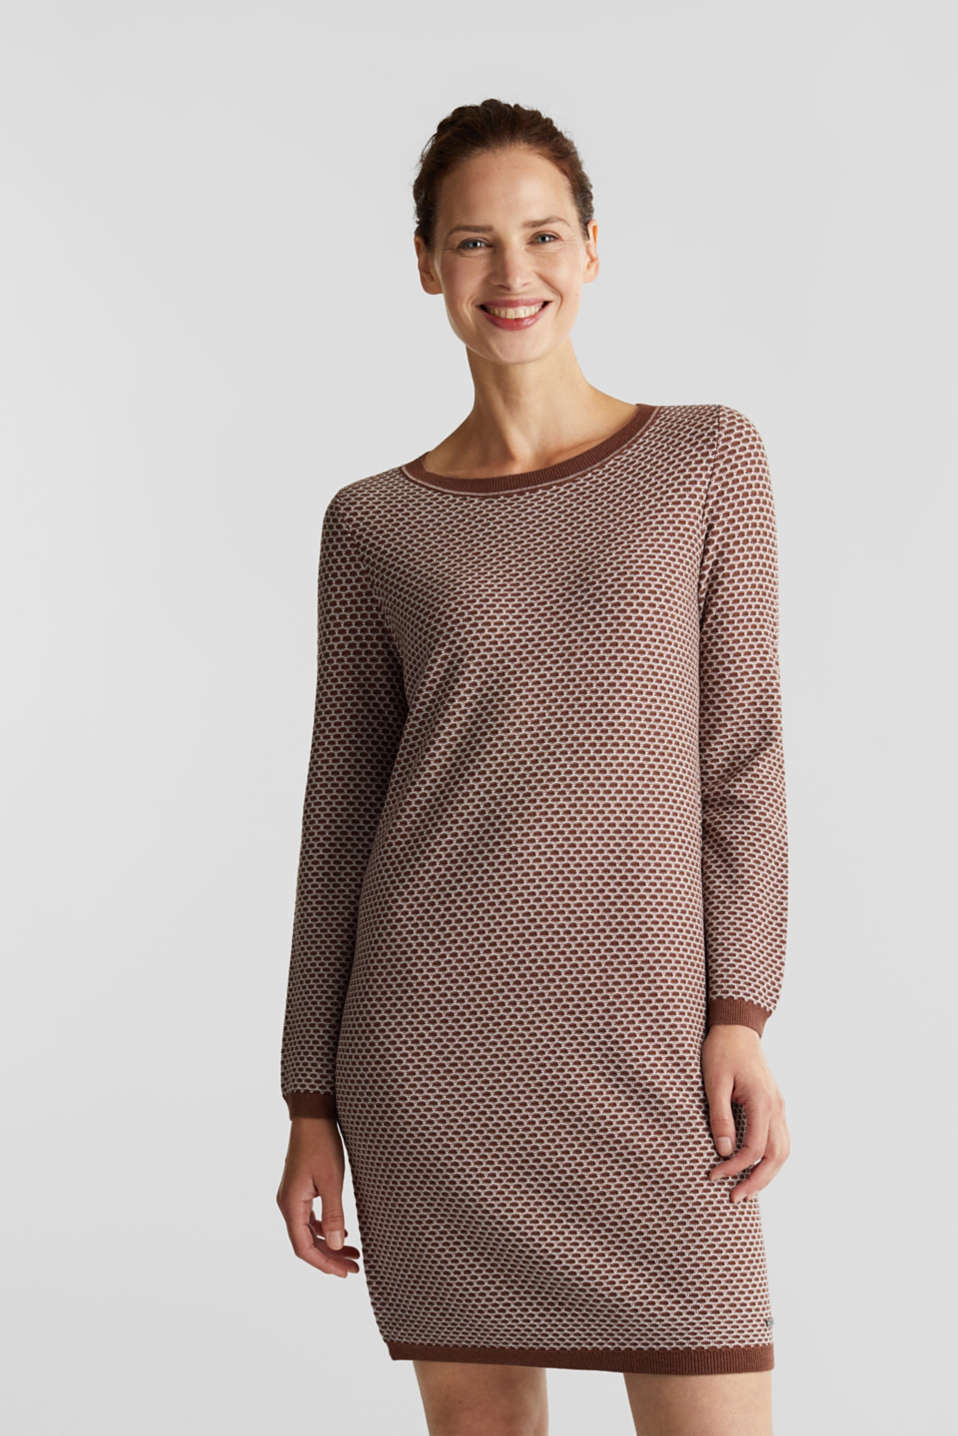 Esprit - Jacquard knitted dress